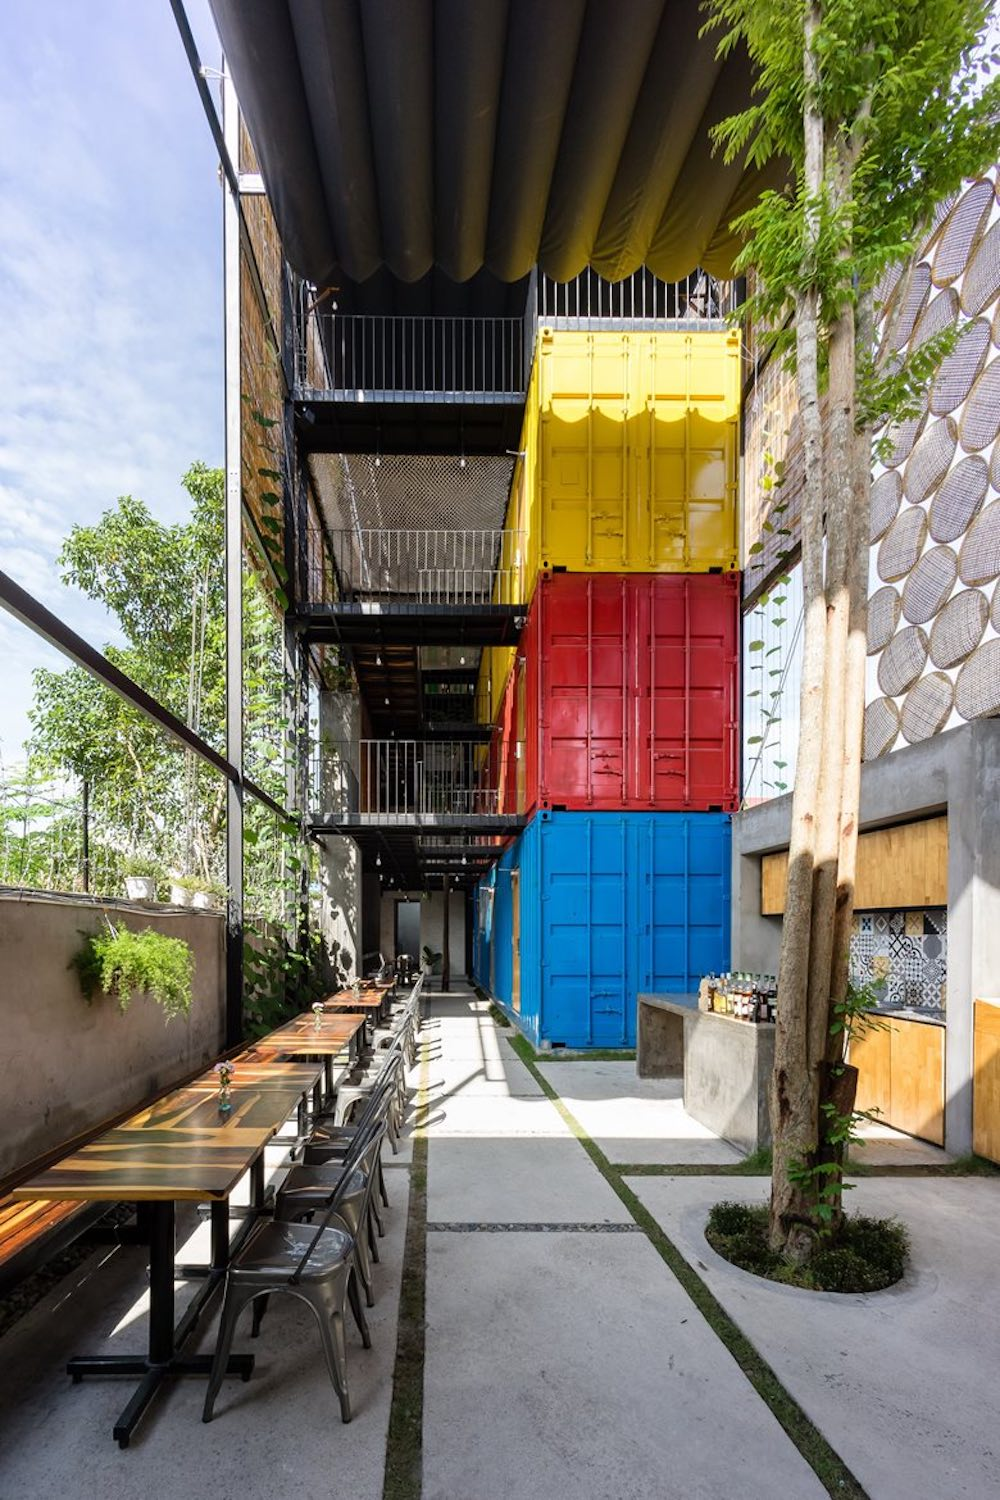 The three colorful containers form the sleeping block and contain the bedrooms